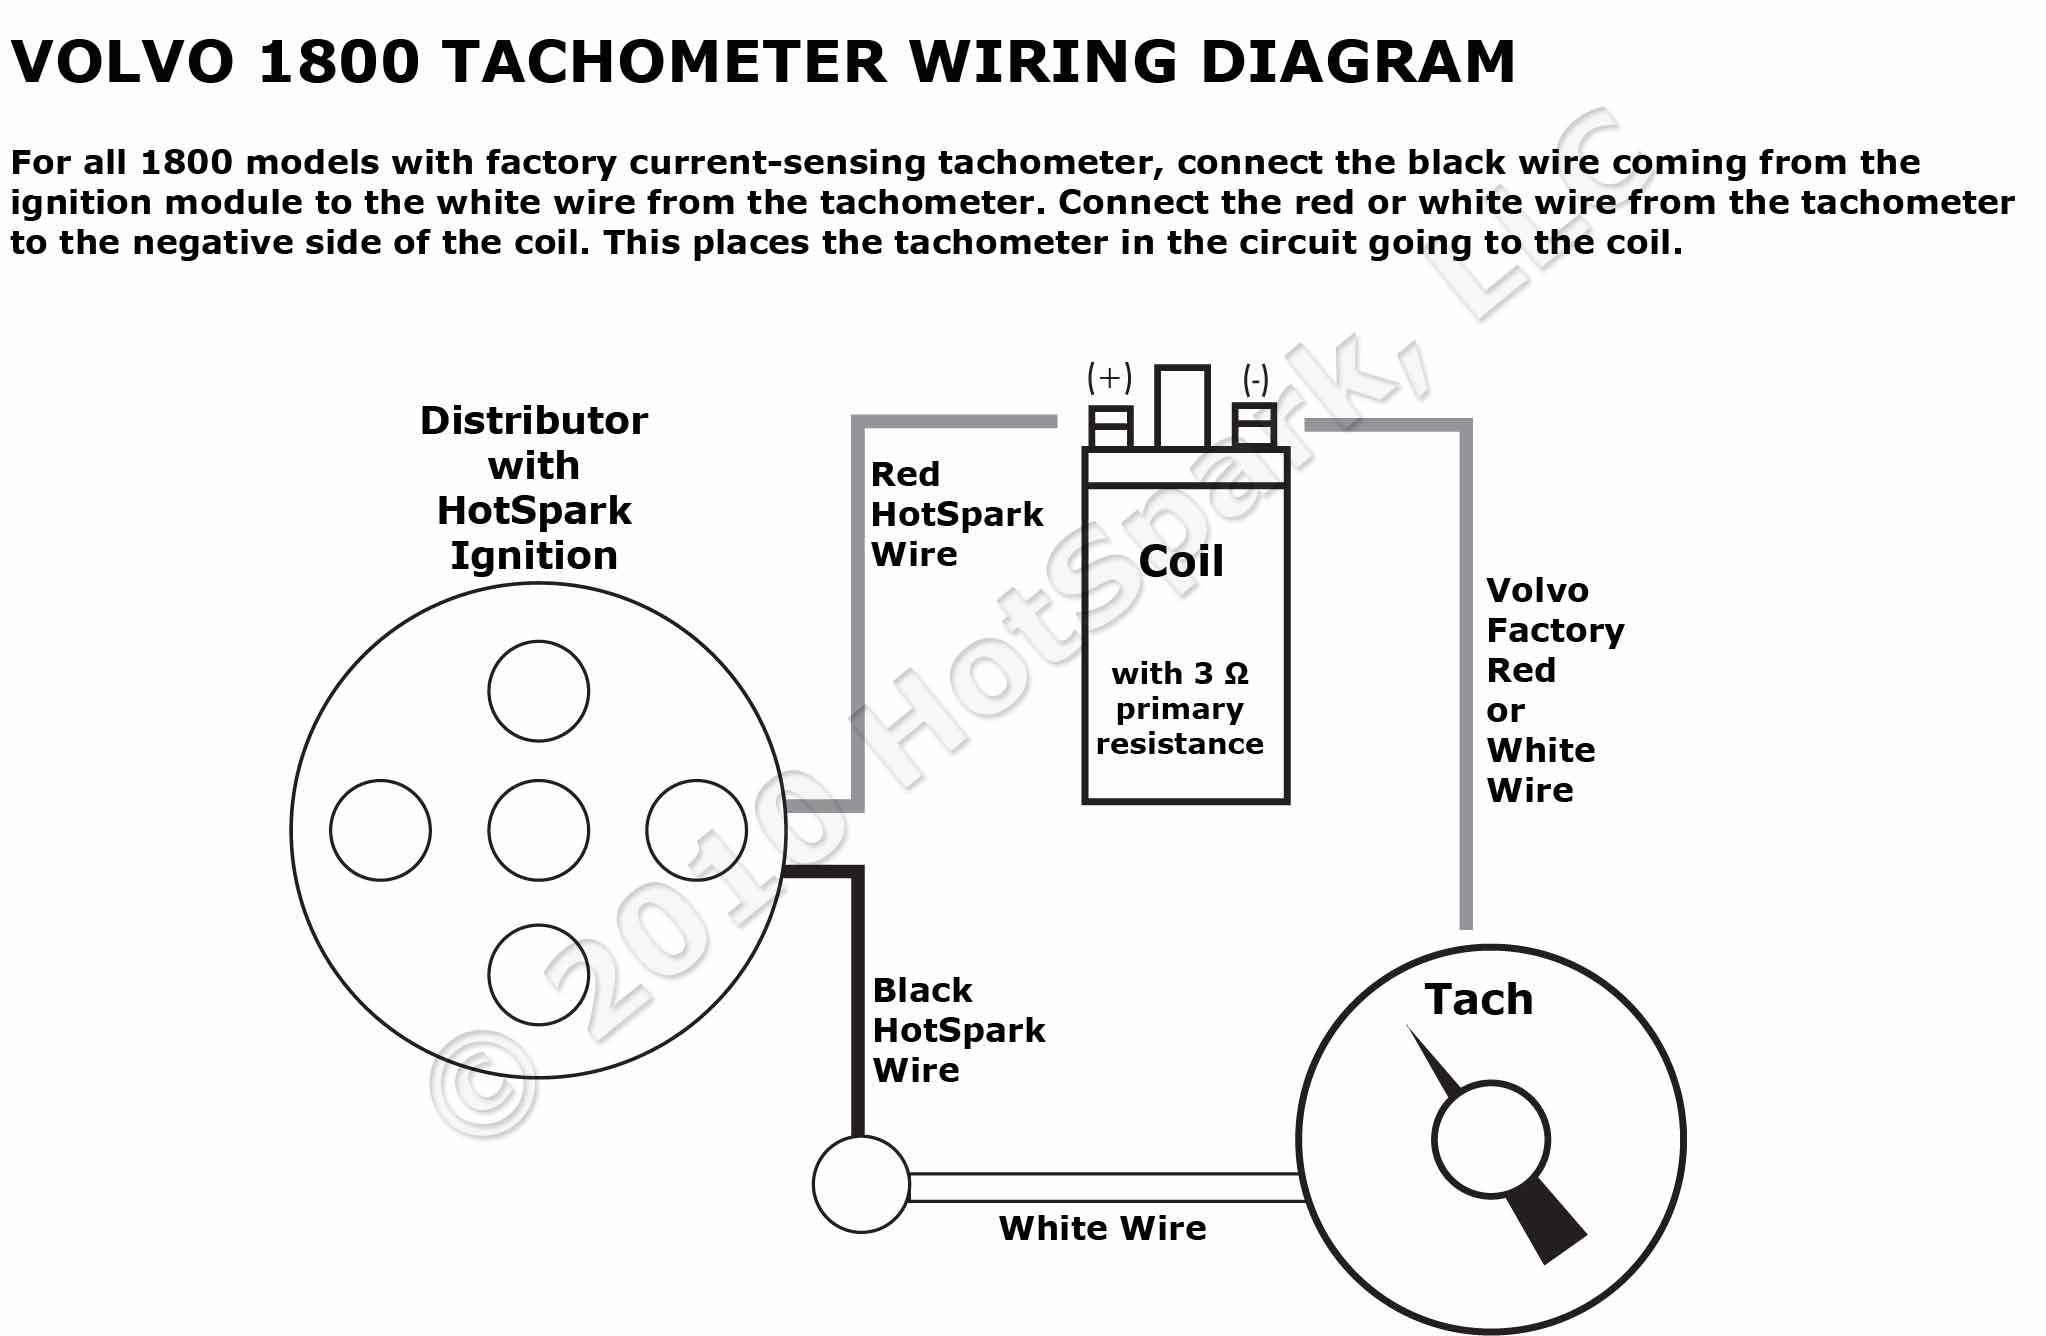 volvo 1800 tachometer wiring diagram with hotspark ignition electronic ignition conversion kit